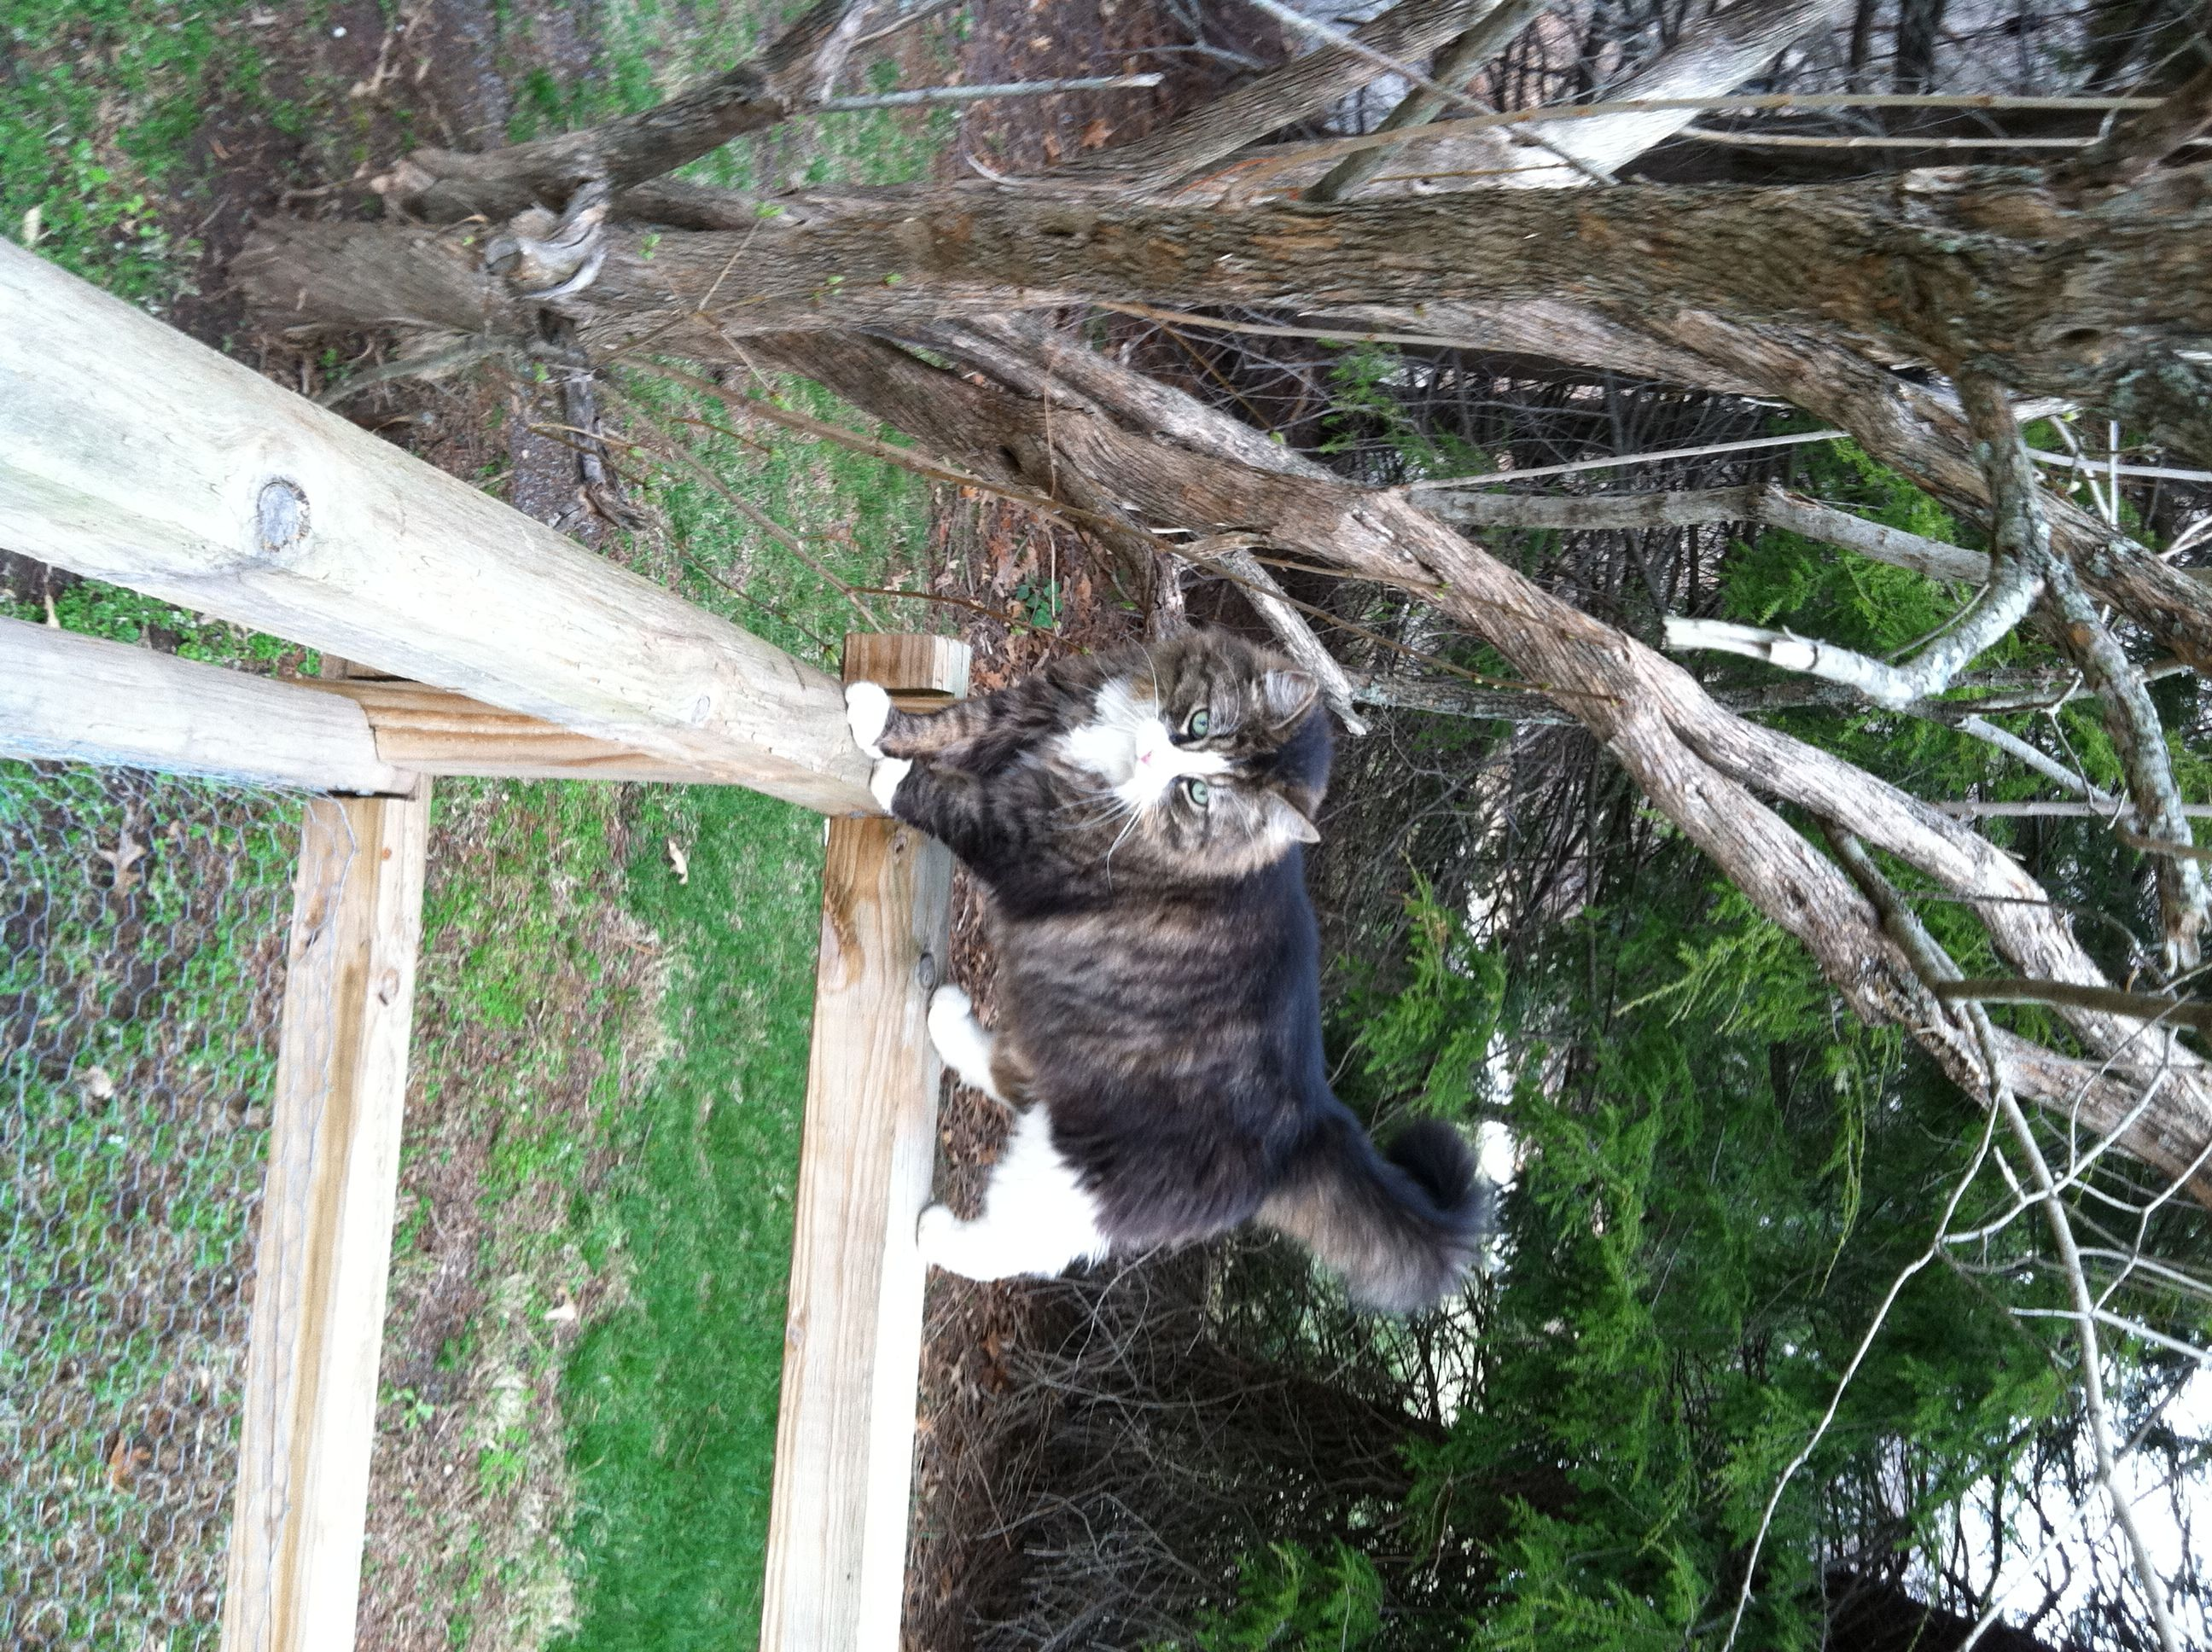 Toonces went missing around 530 a.m. on Friday September